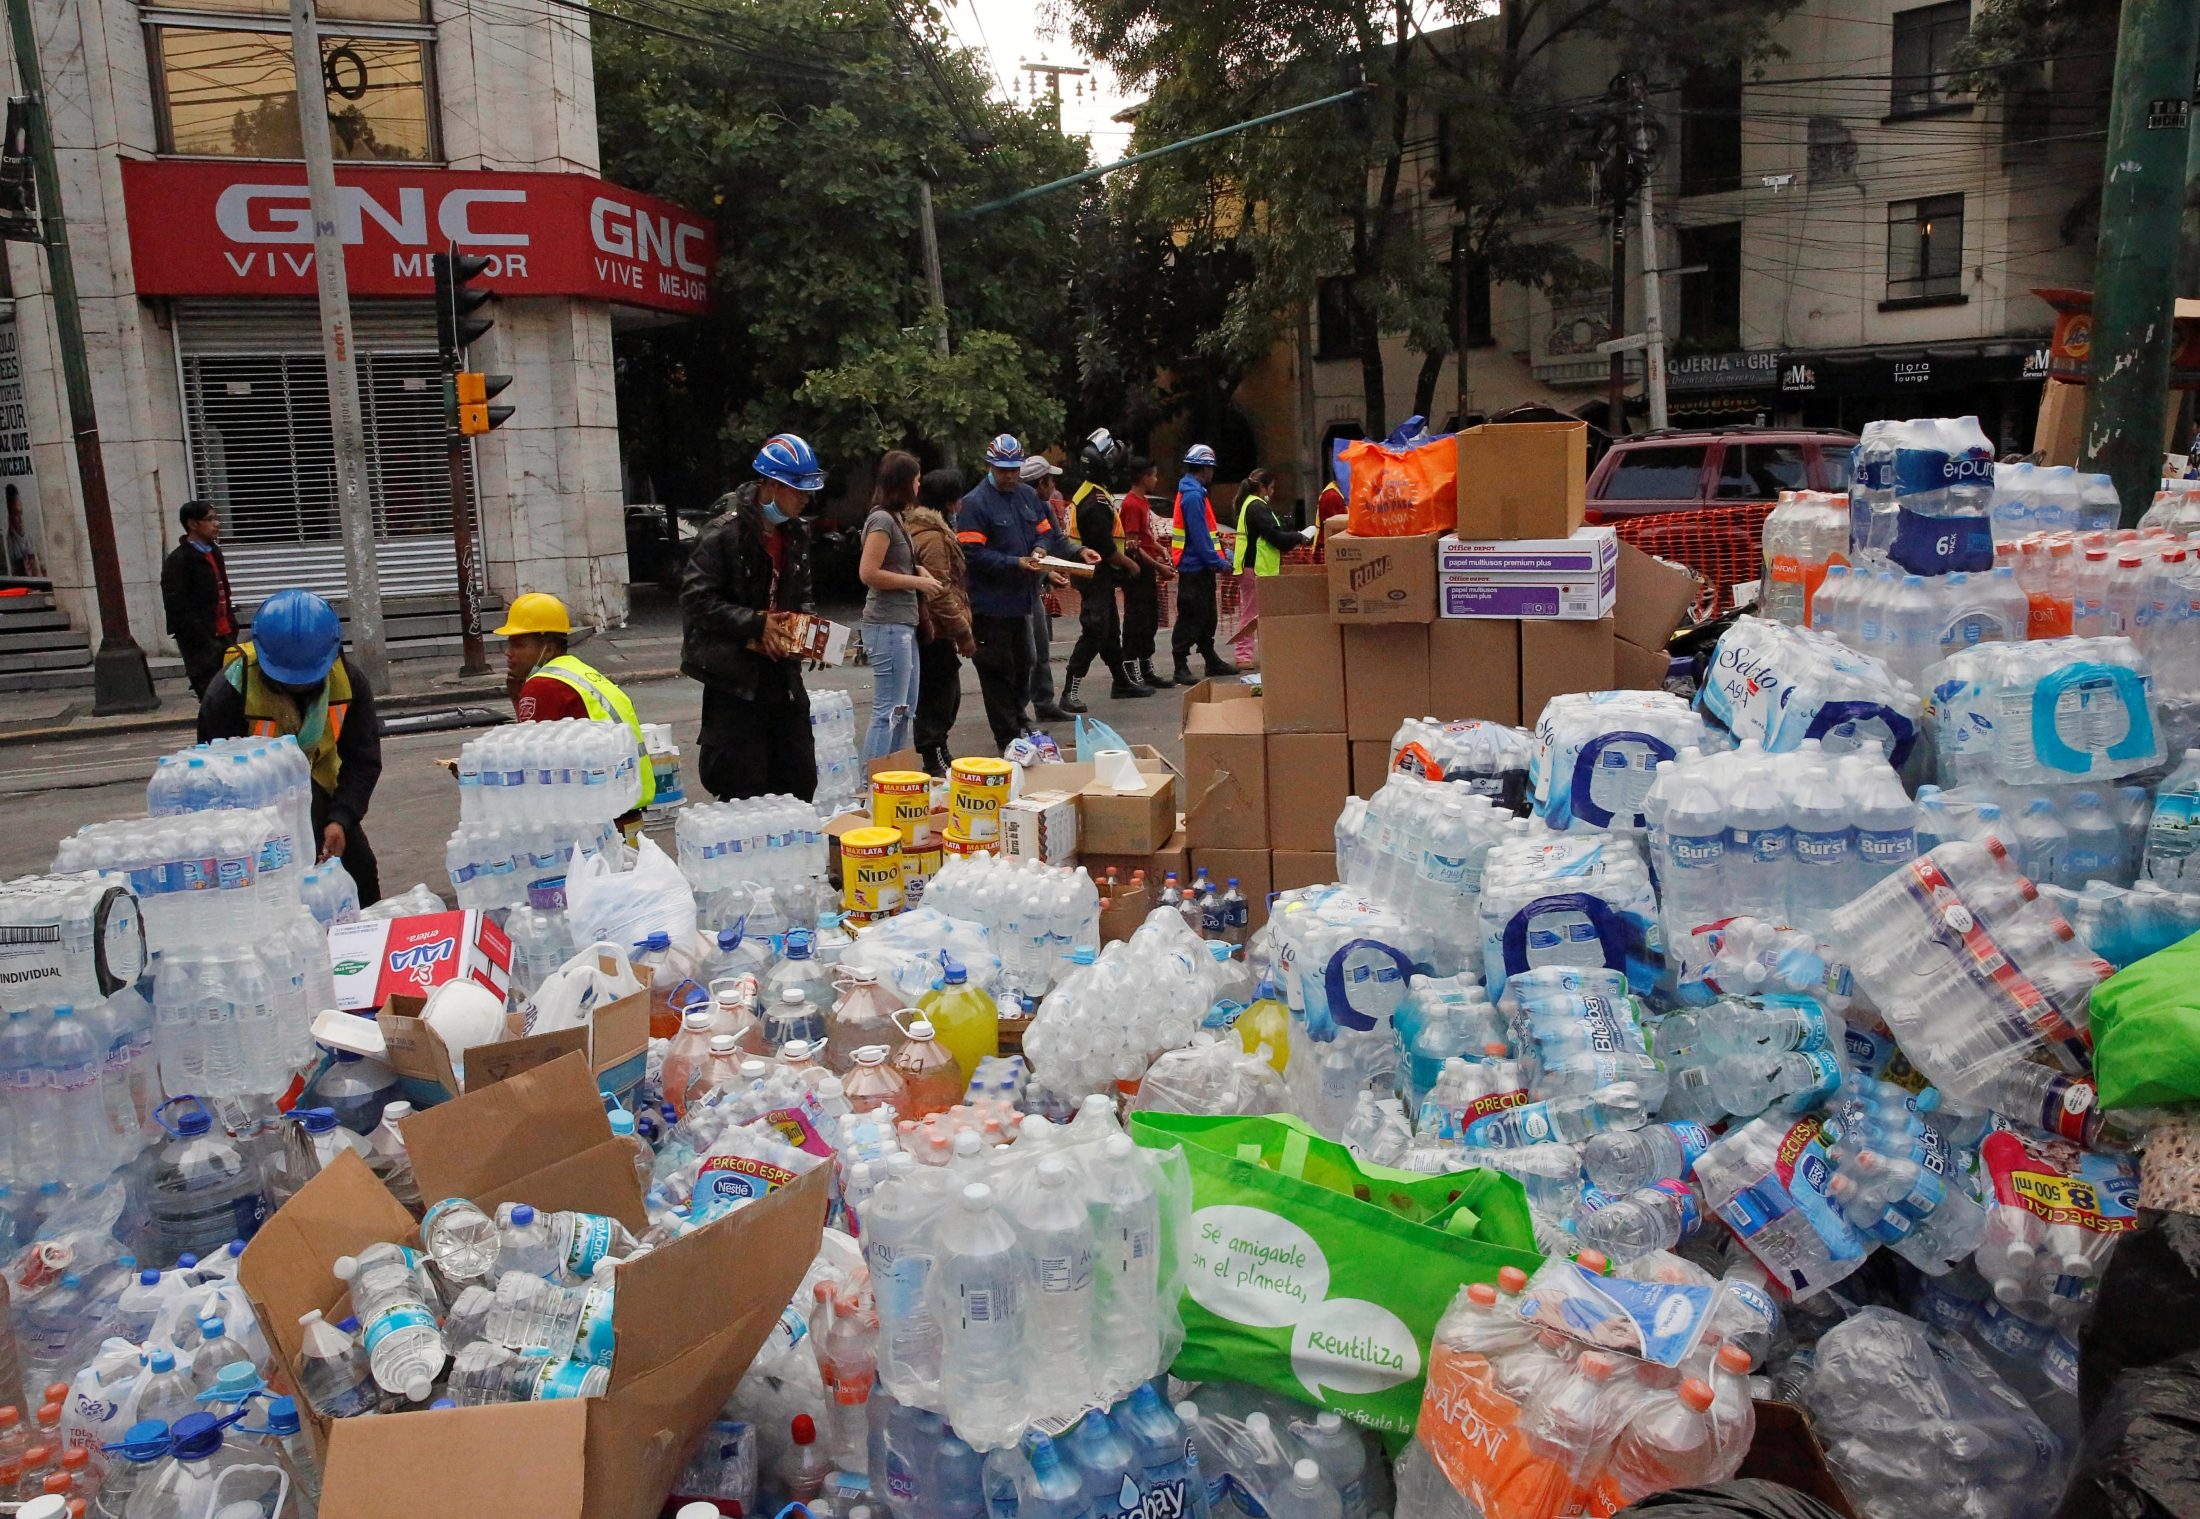 Piles of donations, including bottled water, are distributed after the earthquake. Photo by Henry Romero/Reuters